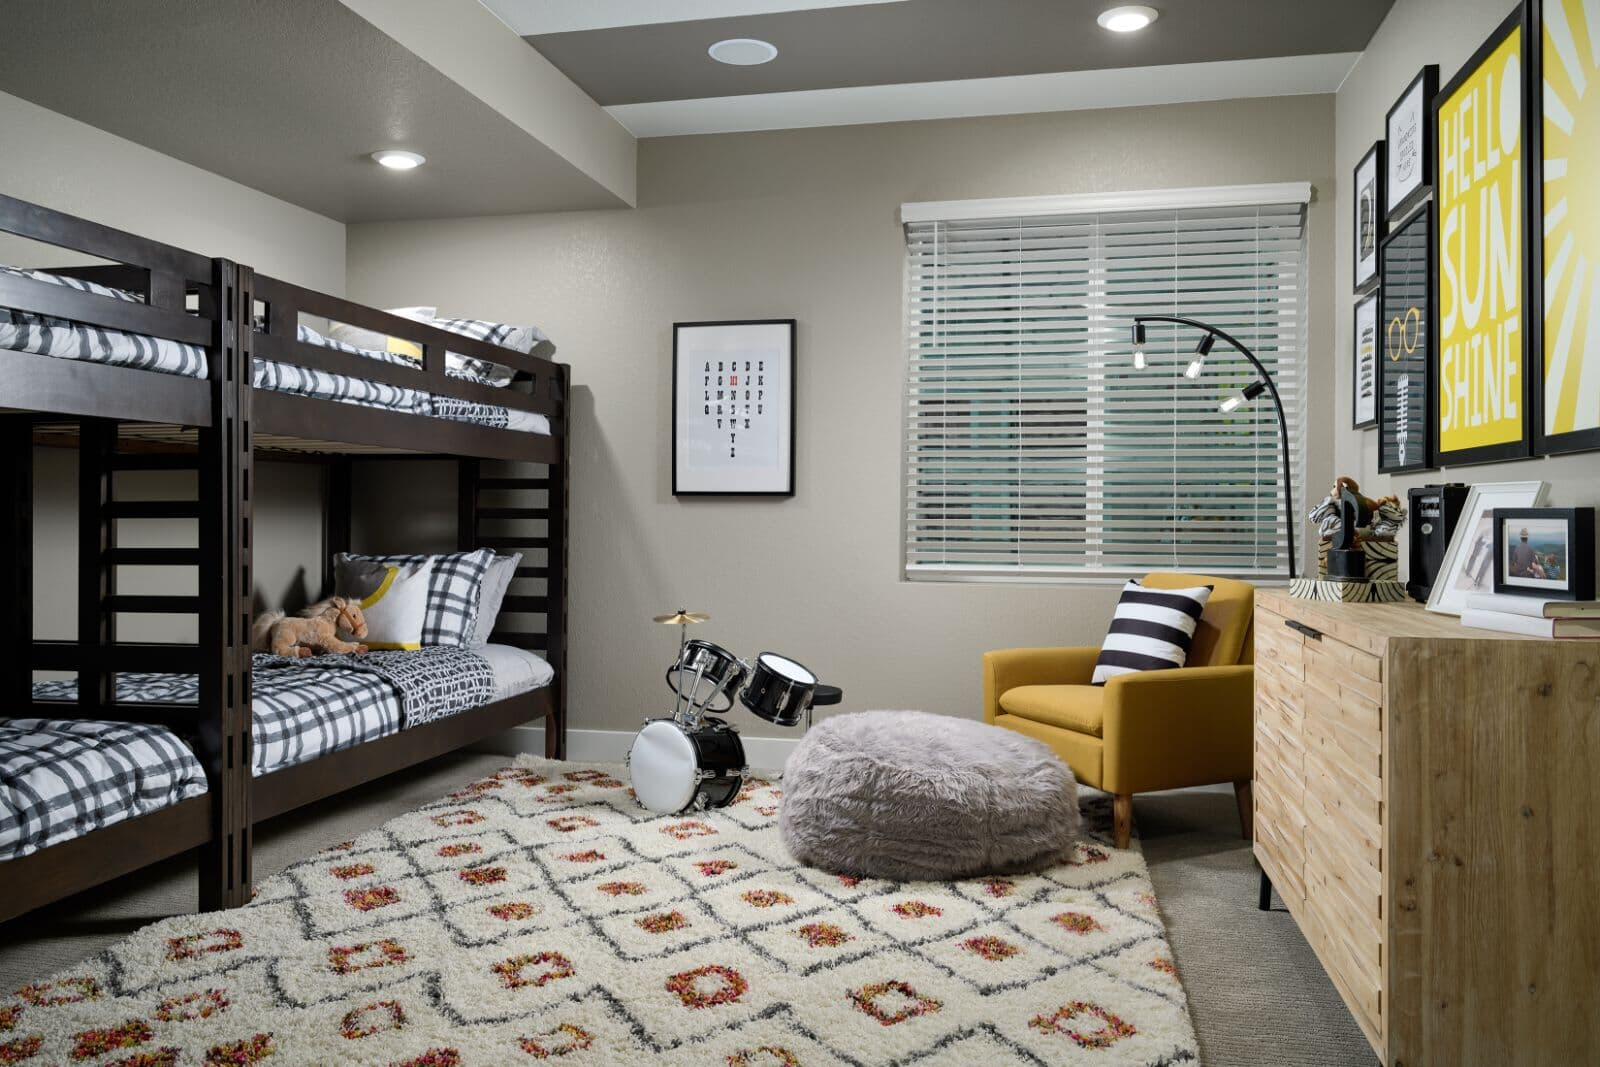 Villa-Two-Guest-Bedroom-Barefoot-Lakes-Denver-Colorado